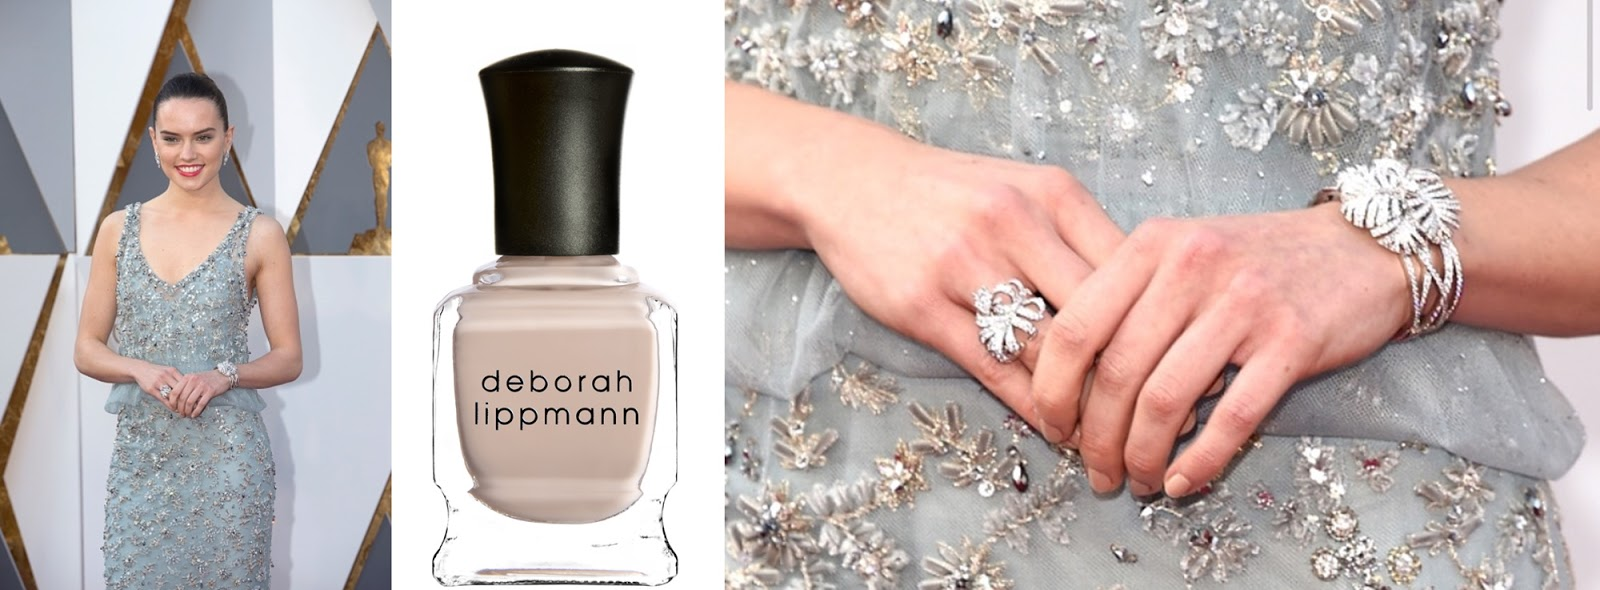 Deborah Lippmann Oscars 2016 Nail Report | The Nail Polish Exchange